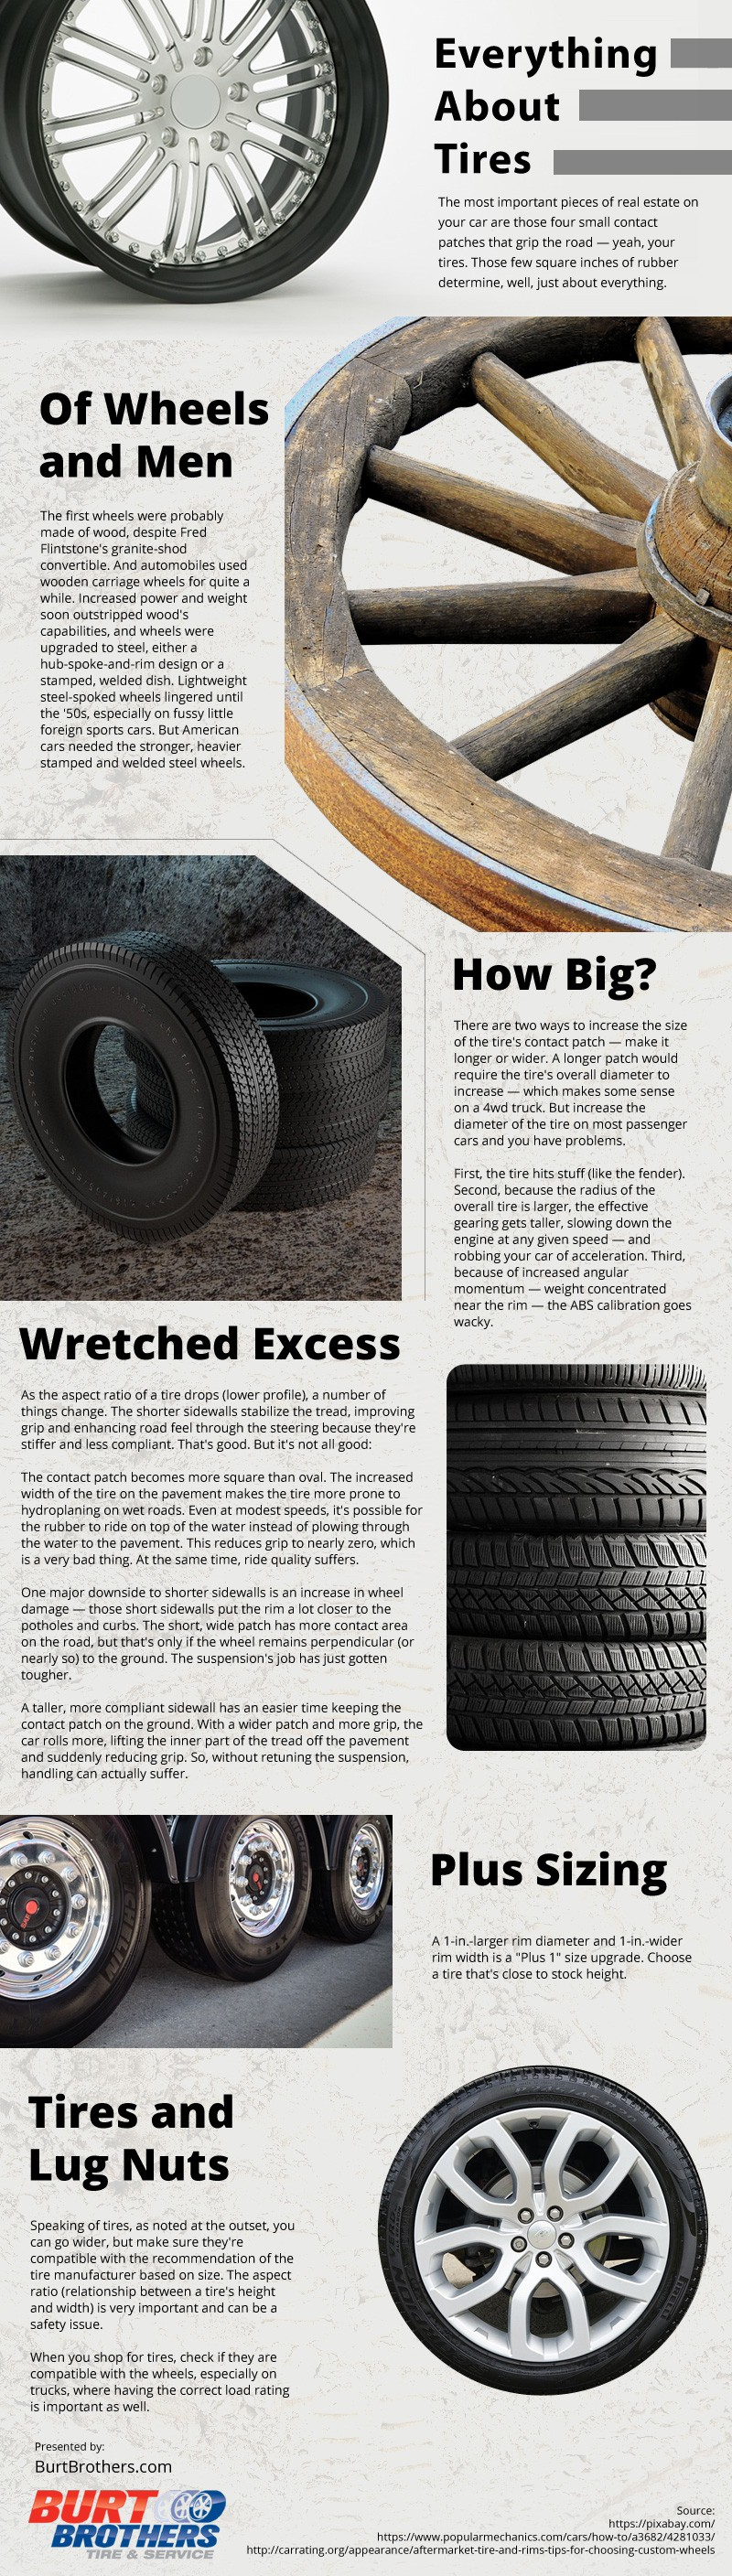 Everything About Tires [infographic]